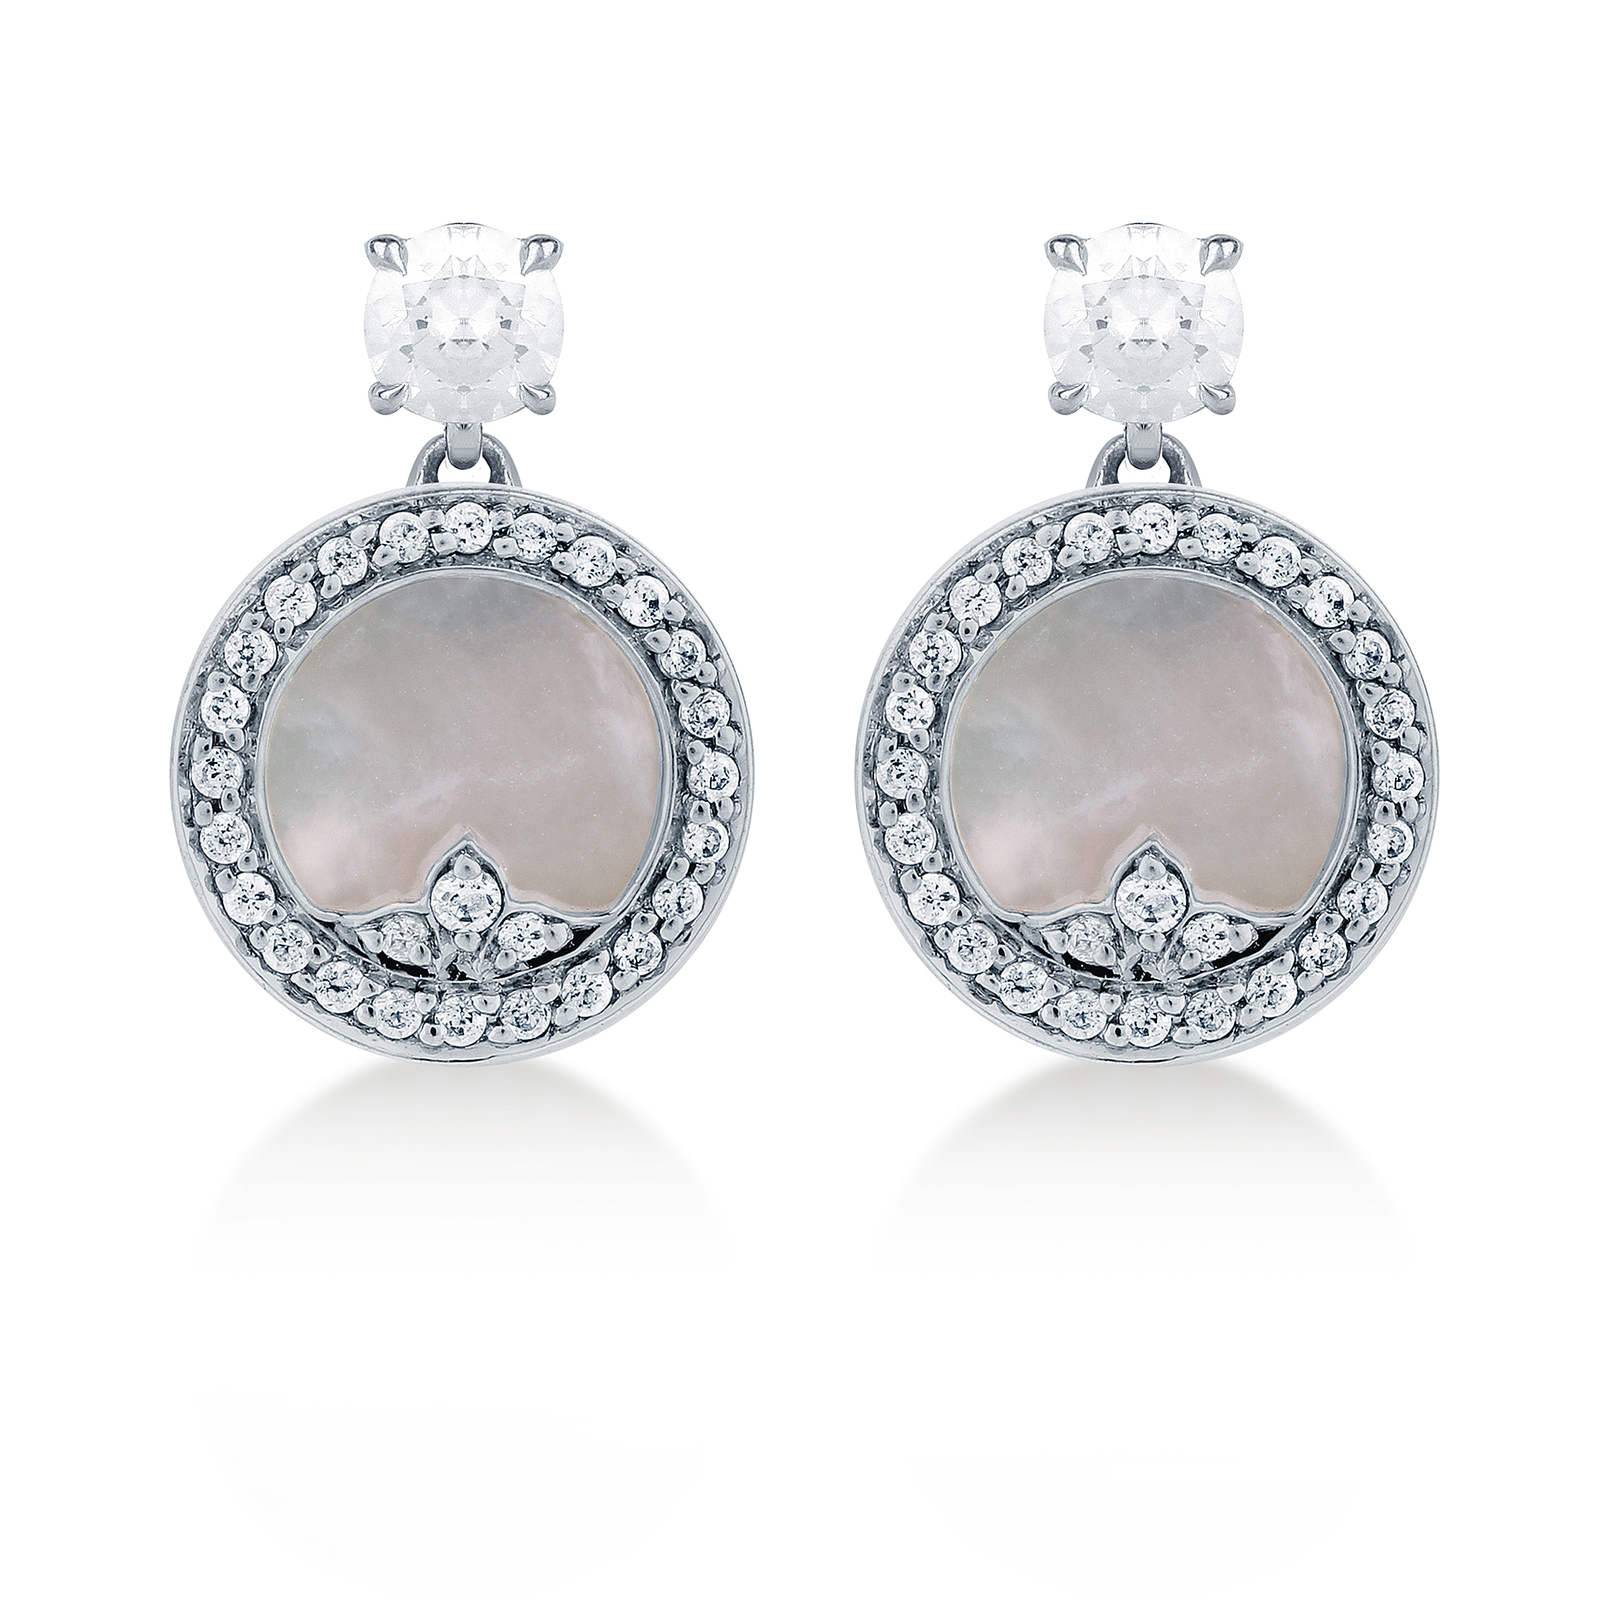 Treasure Empress Grey Mother of Pearl Stud Earrings in 18ct White Gold